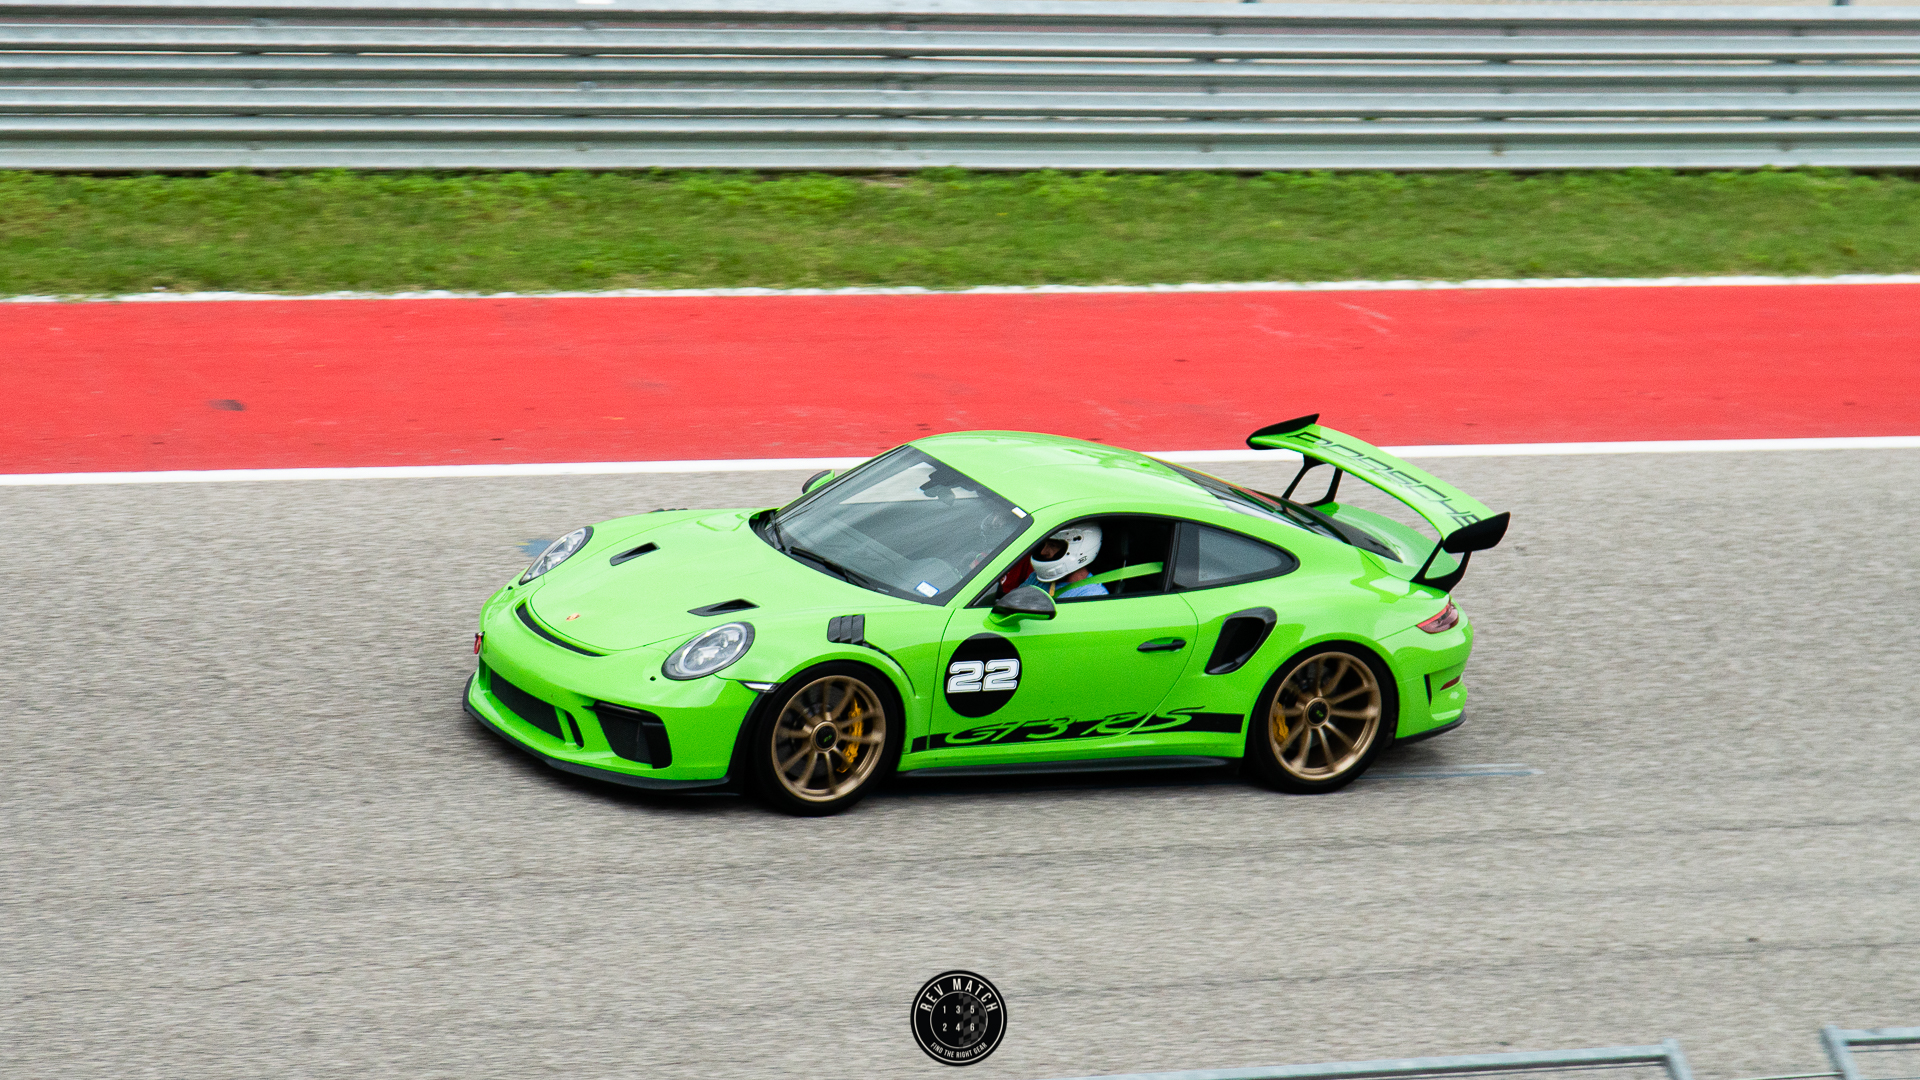 Edge Addict COTA May 2019 Rev Match Media-16.jpg